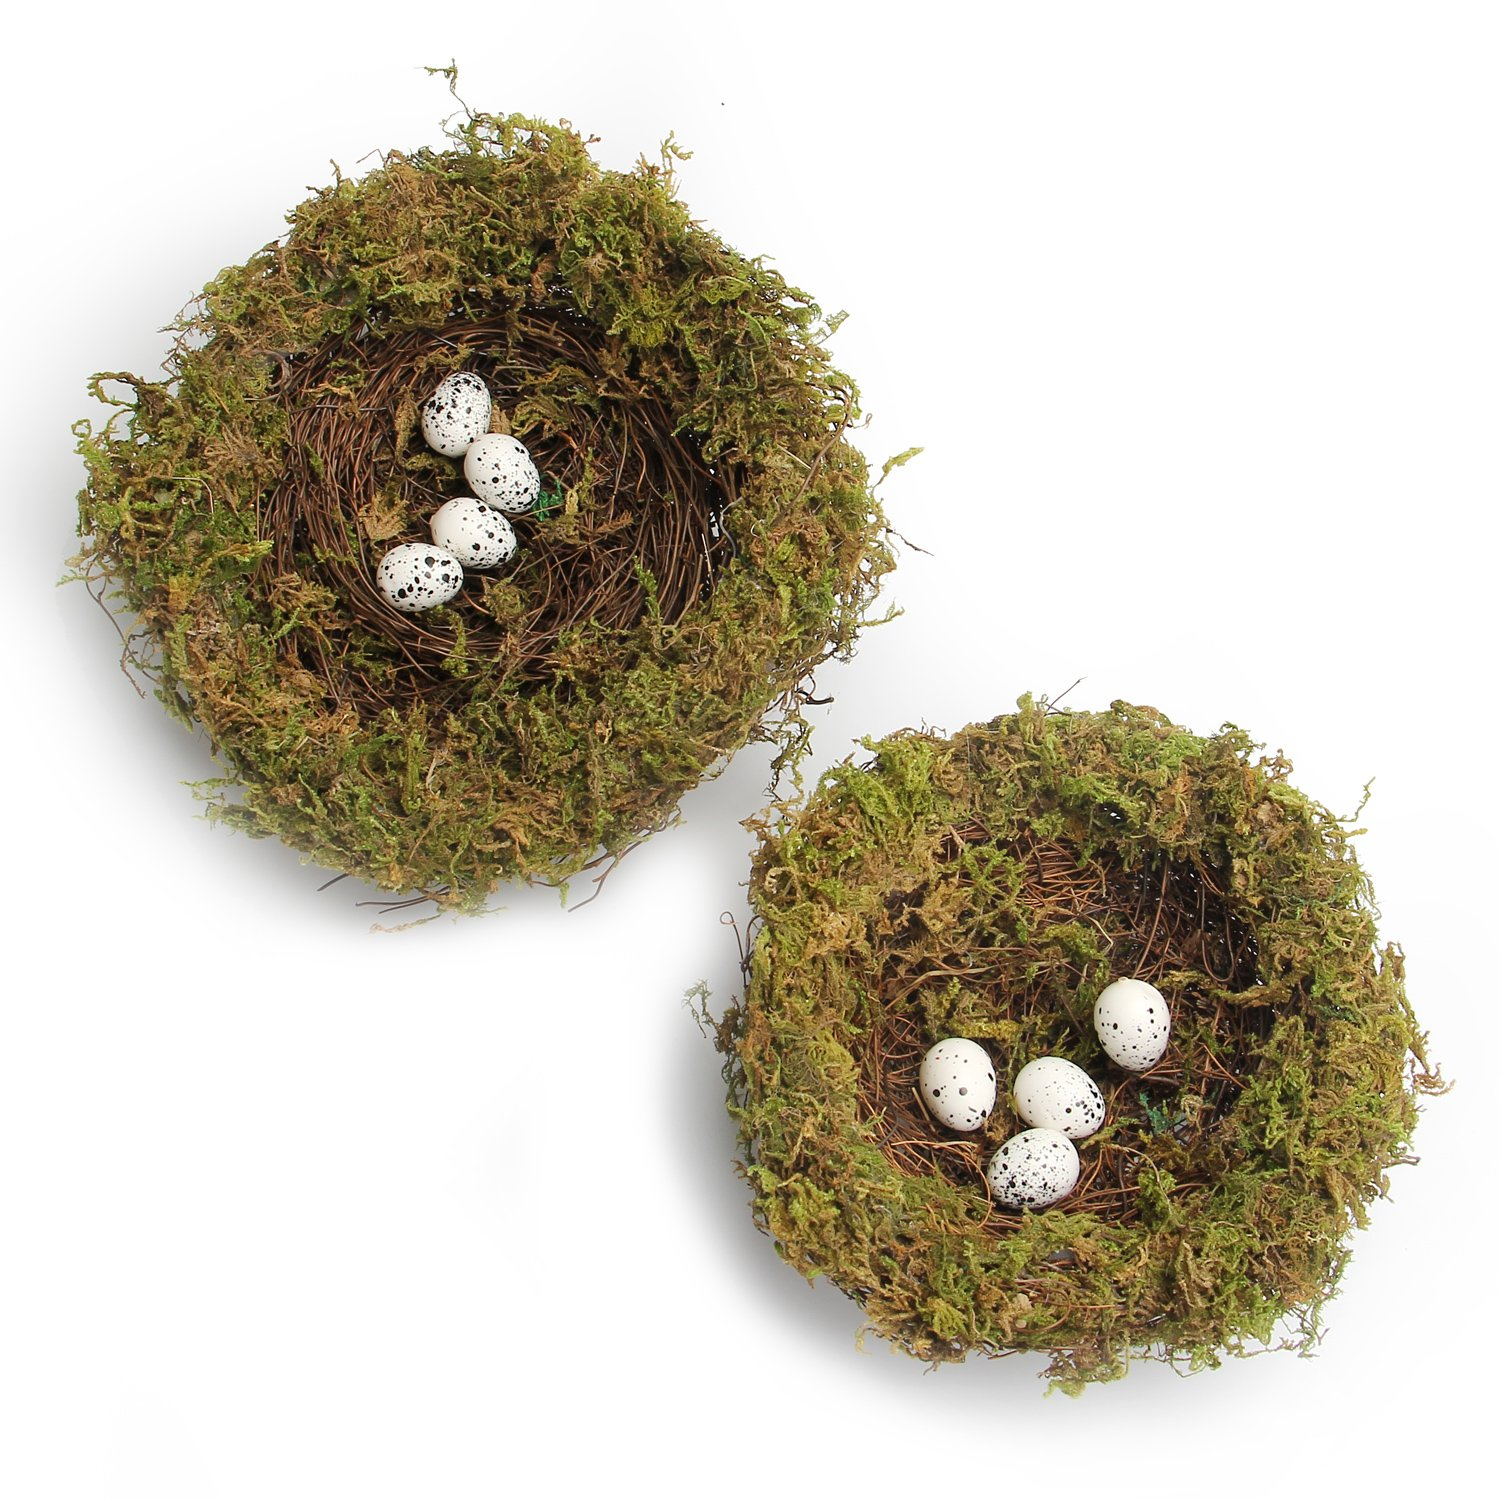 MomokoPeng Set of 2 Spring Bird Nests With Eggs,Twig Bird Nest Decorative Ornament With Clip(Green Bird's Nest)